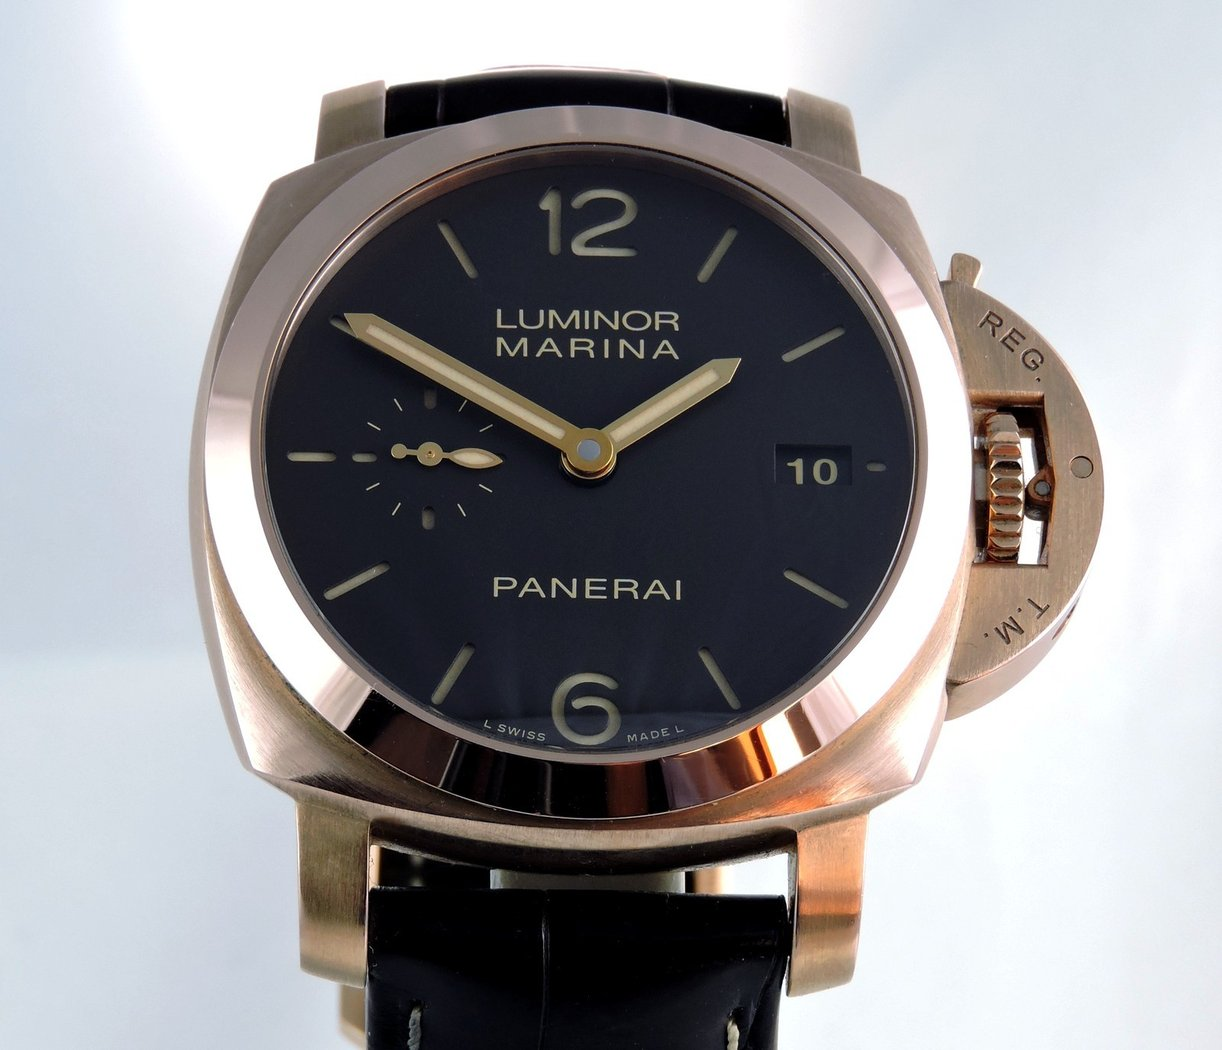 2013 panerai luminor marina 1950 18k vintage oyster. Black Bedroom Furniture Sets. Home Design Ideas